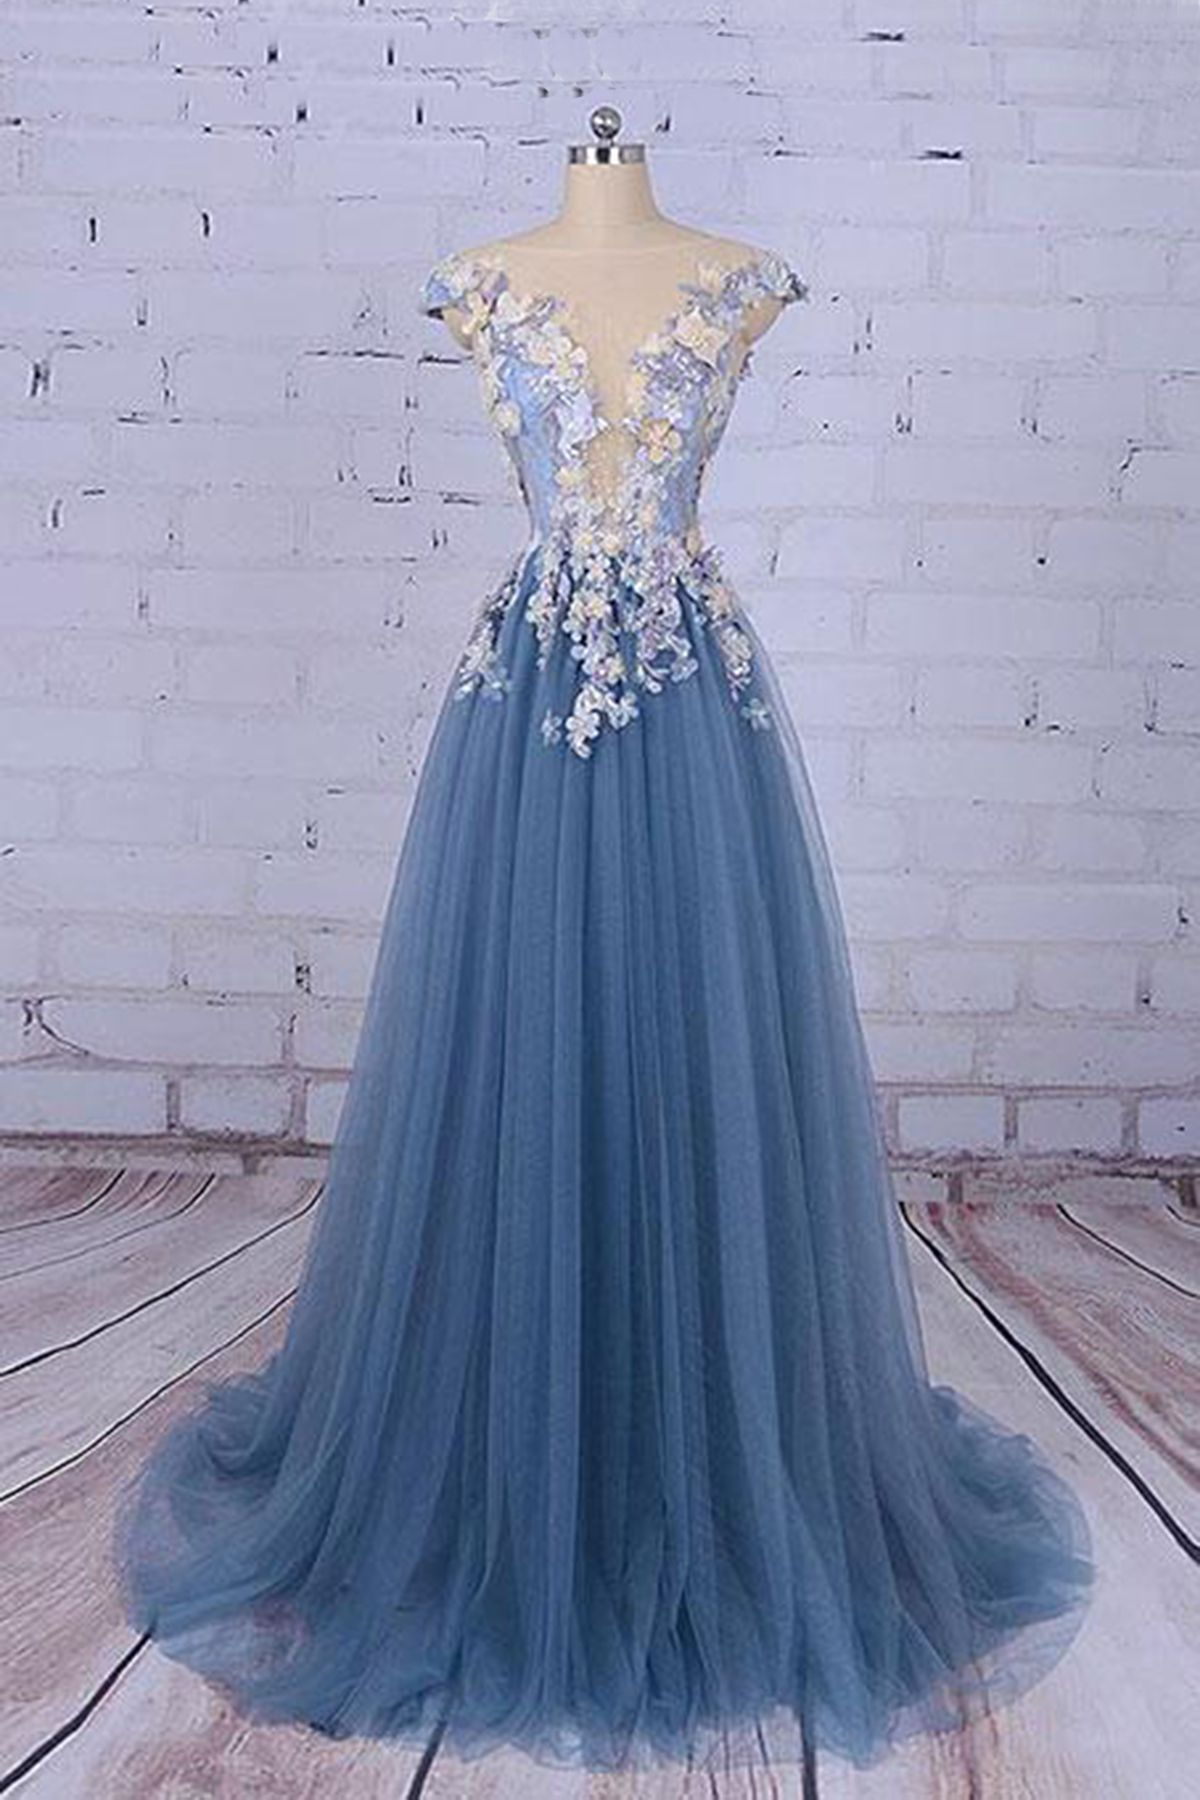 2019 year for women- Blue Unique prom dresses